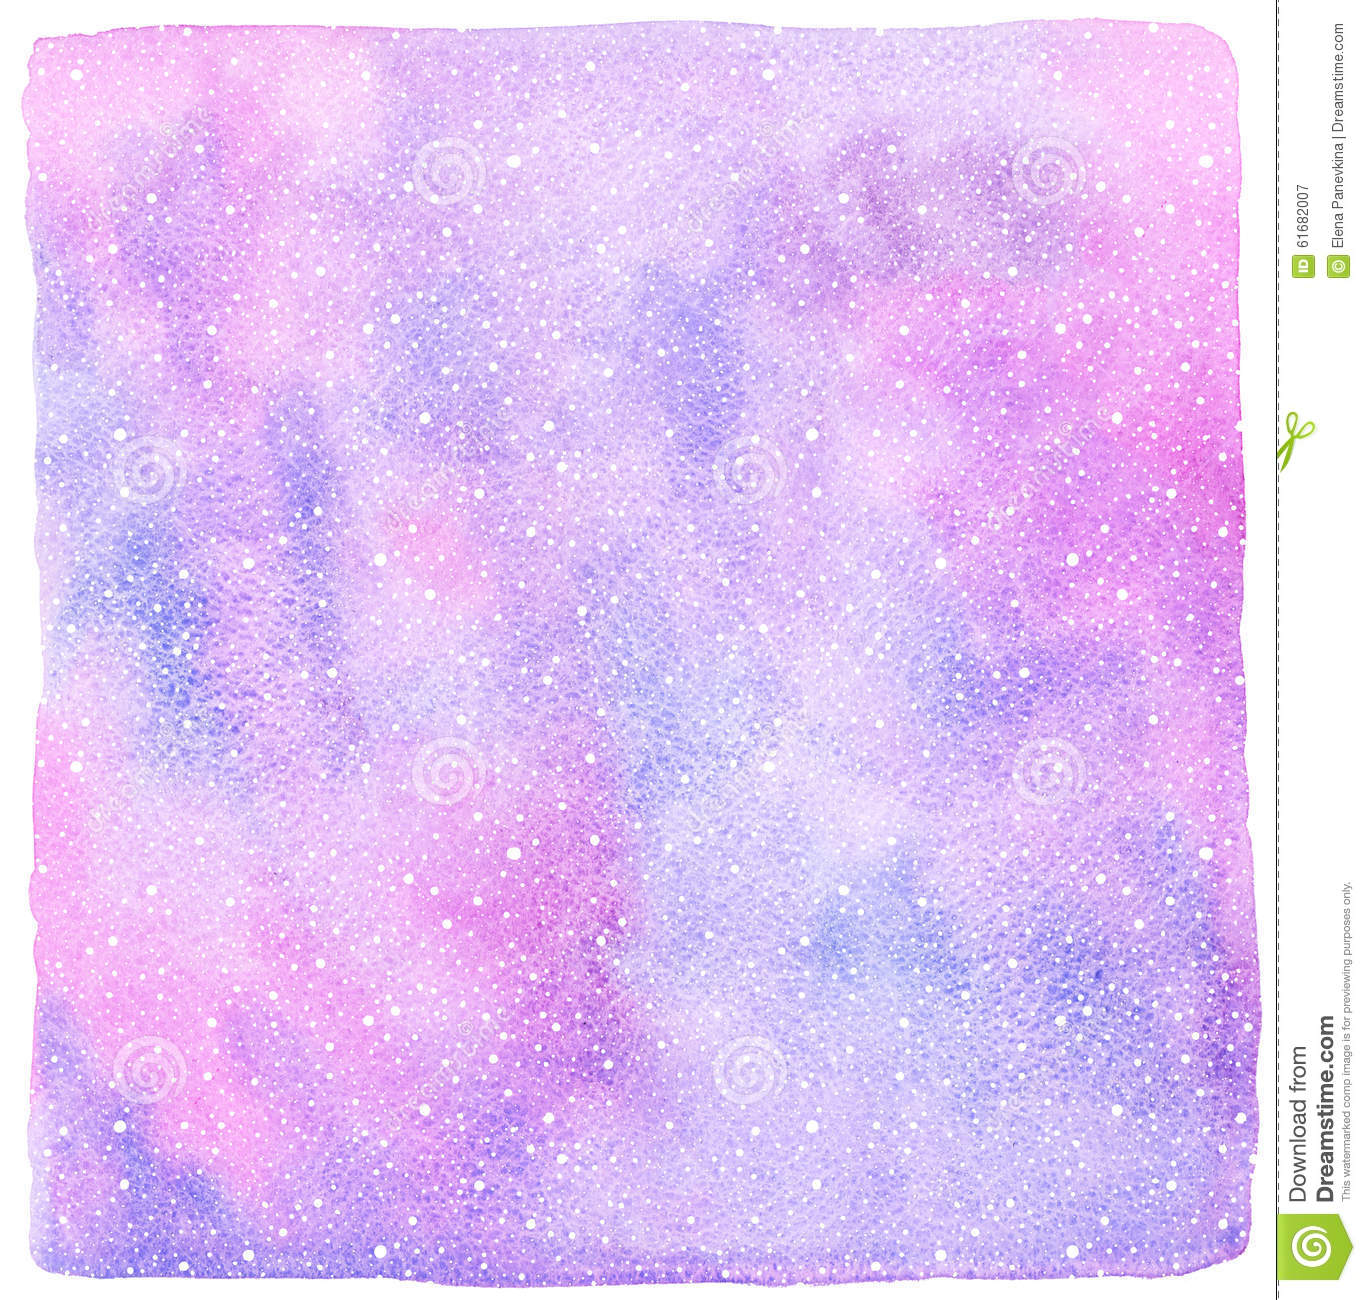 Christmas Snow Falling Wallpaper Pink And Lilac Winter Watercolor Background With Snowfall